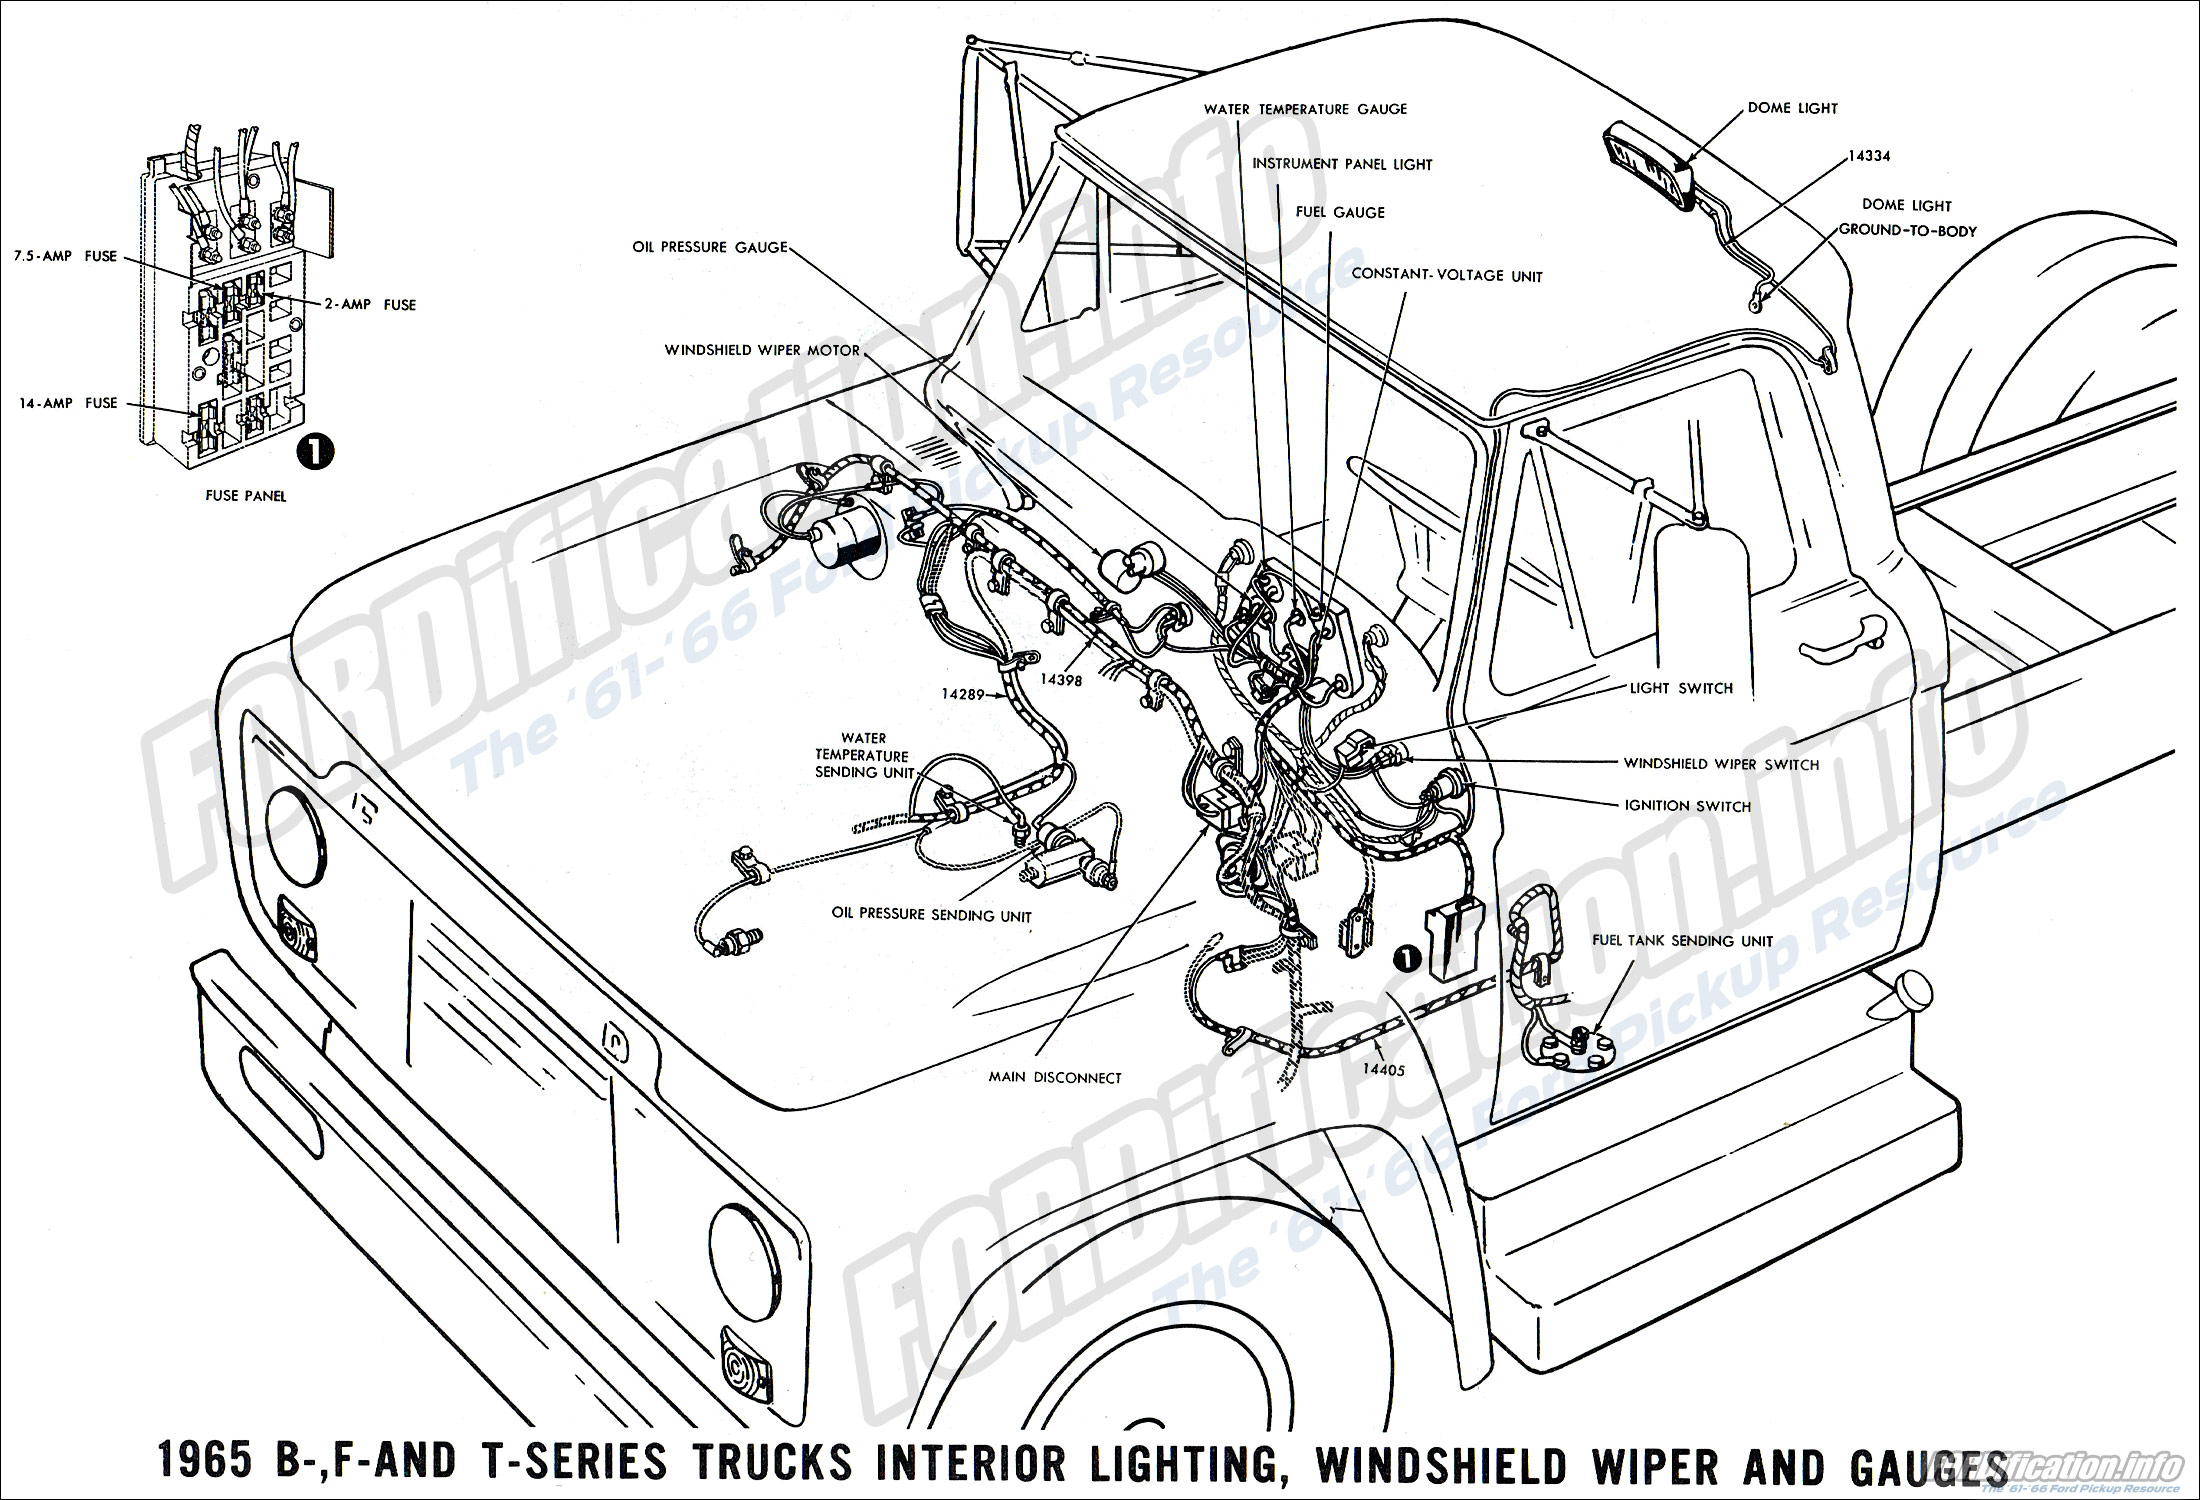 1965 ford truck wiring diagrams fordification info the '61 '66 1957 ford wiring diagram 1965 b , f and t series truck interior lighting, windshield wiper and gauges